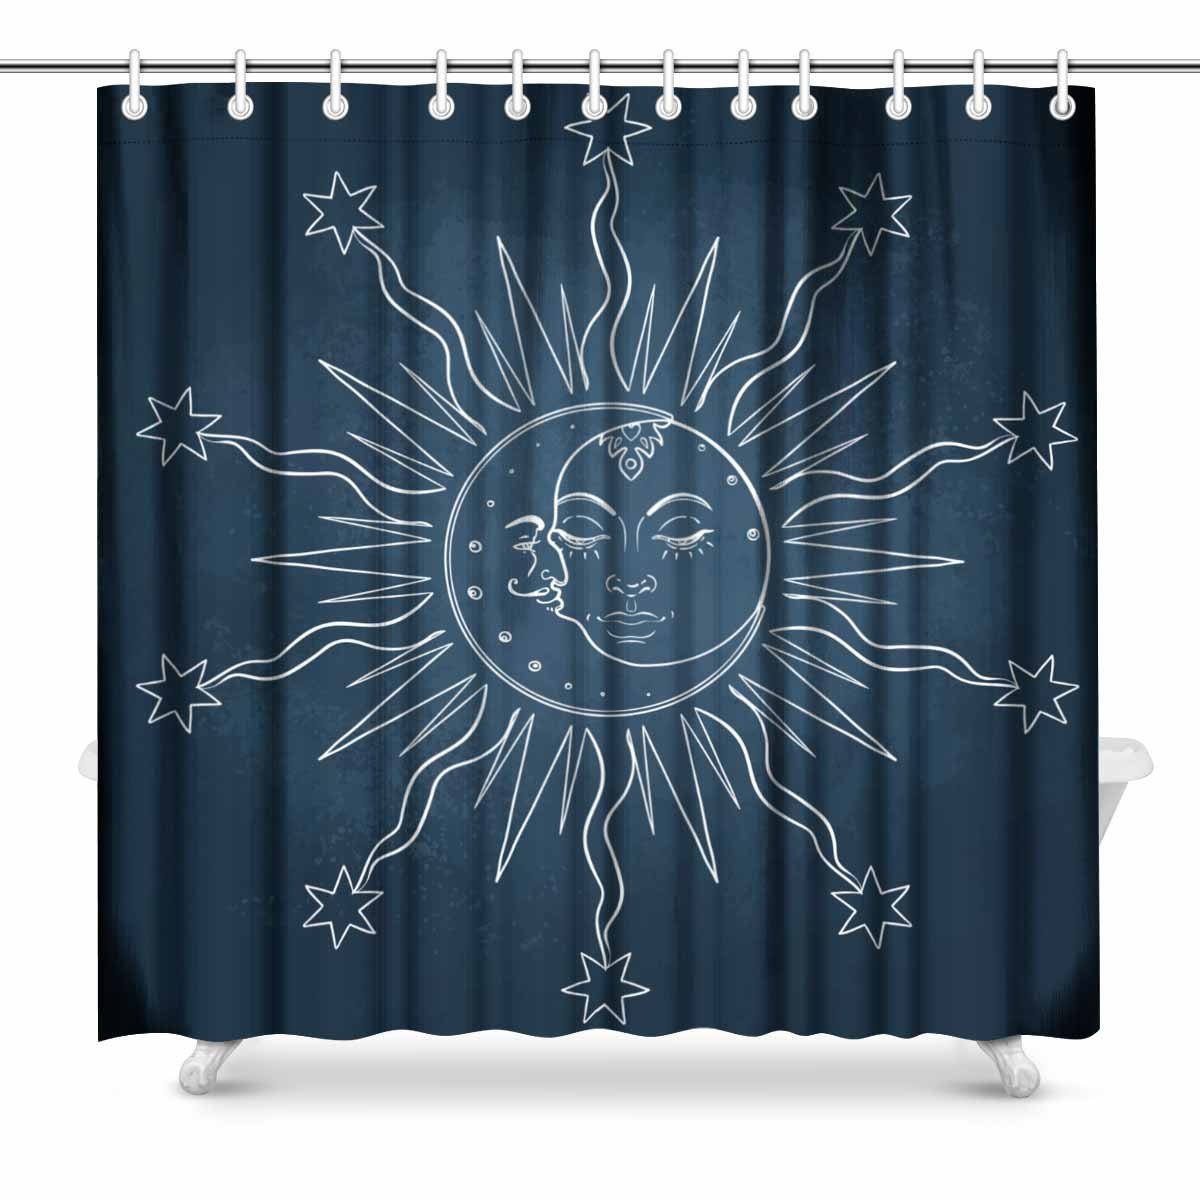 Aplysia Sun and Moon Vector in Vintage Engraving Style Bathroom ...